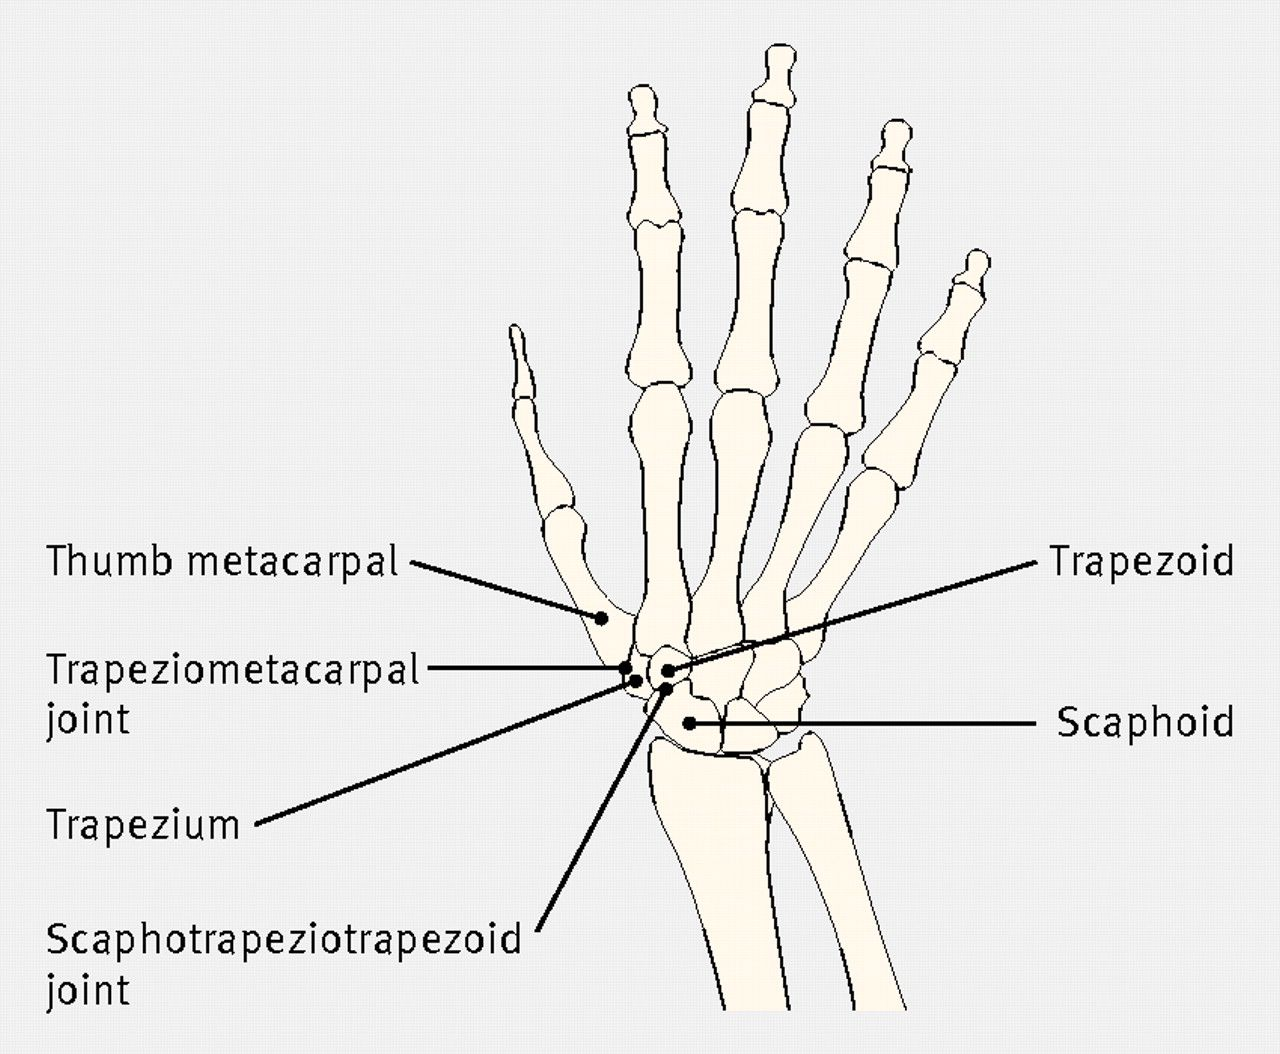 medium resolution of diagram of the bones of the hand and carpus showing the trapeziometacarpal and scaphotrapeziotrapezoid joints where basal thumb arthritis occurs